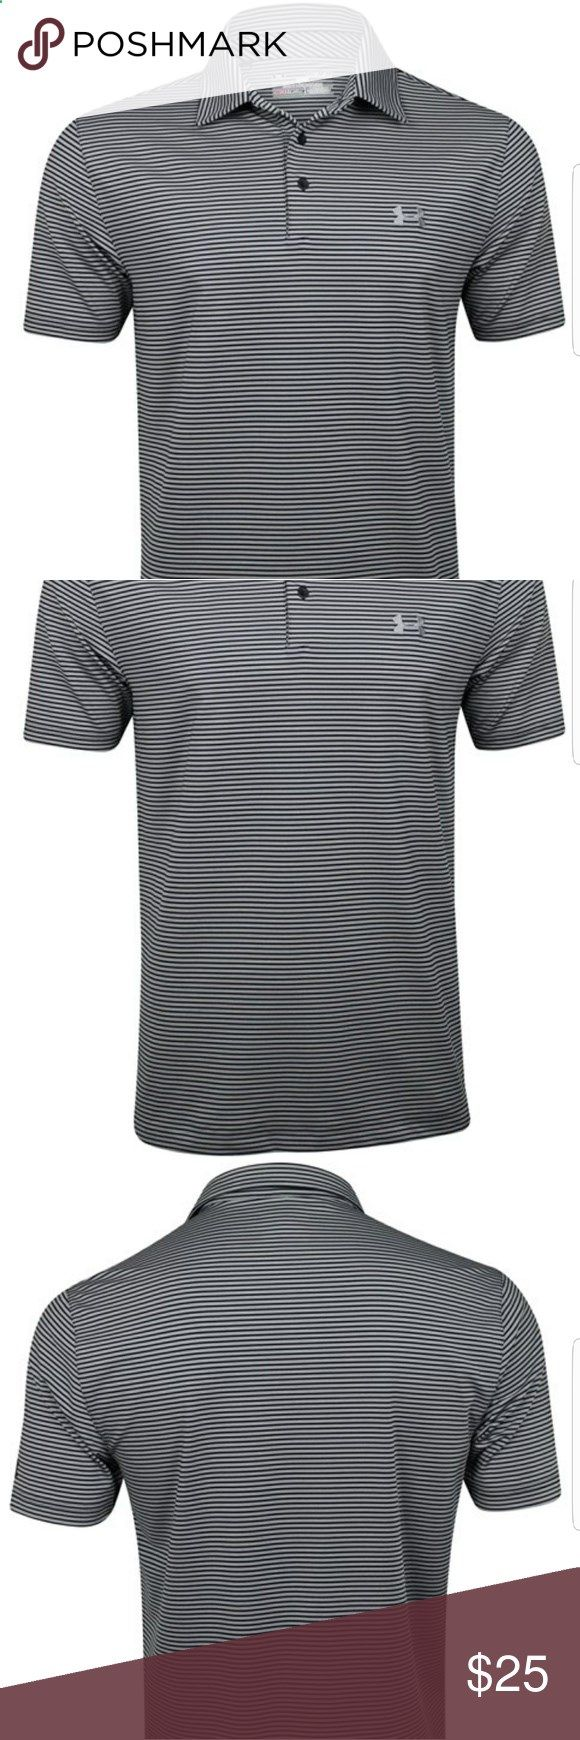 Under Armour Mens Golf Shirt Dry Wick Fabric Very lightweight and soft Under Armour Shirts